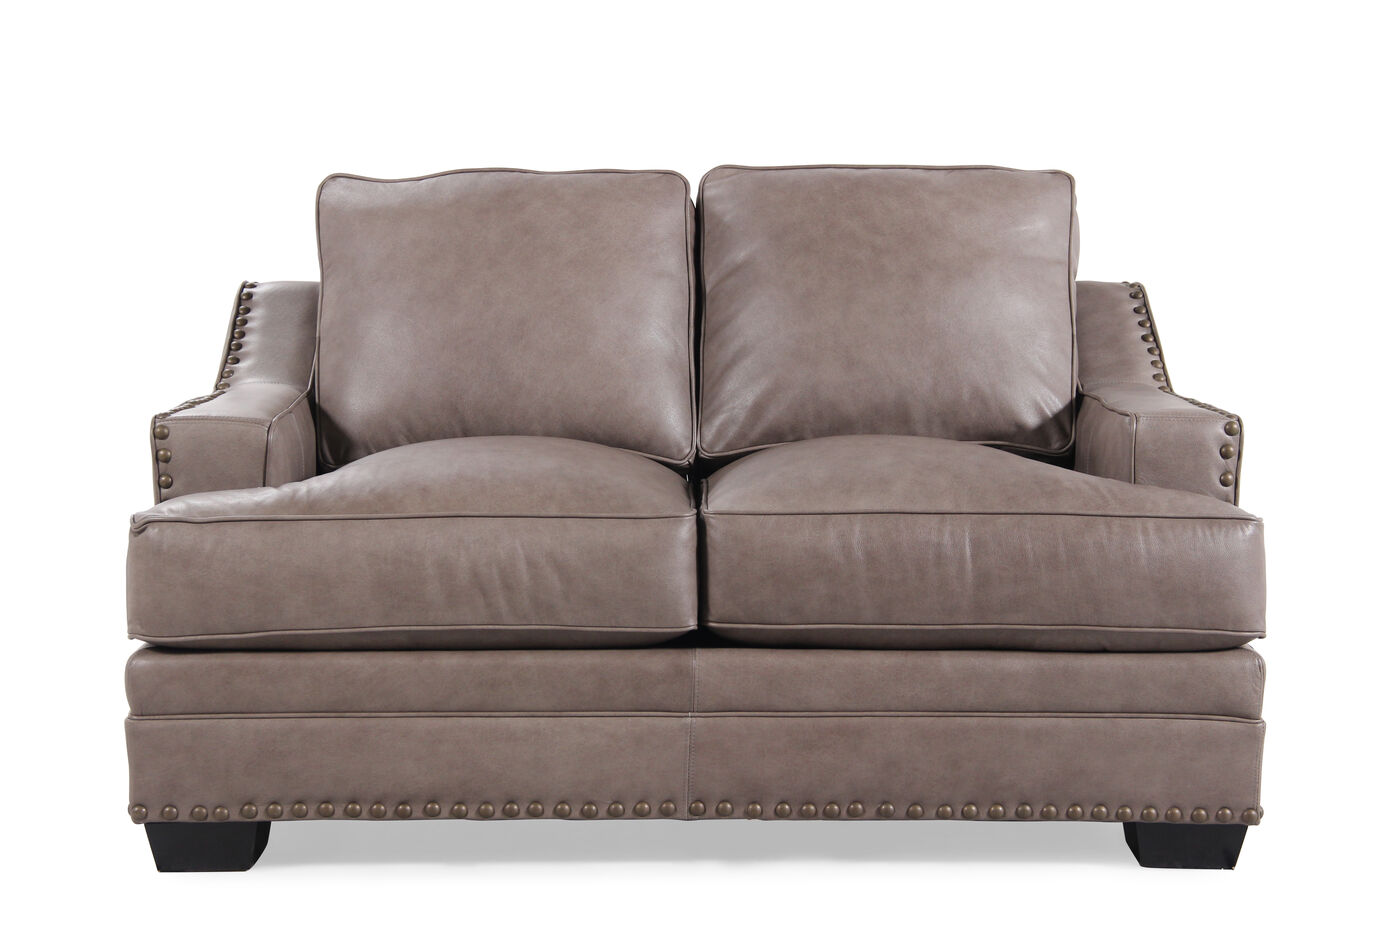 Low Profile Leather 61 Loveseat In Chestnut Brown Mathis Brothers Furniture